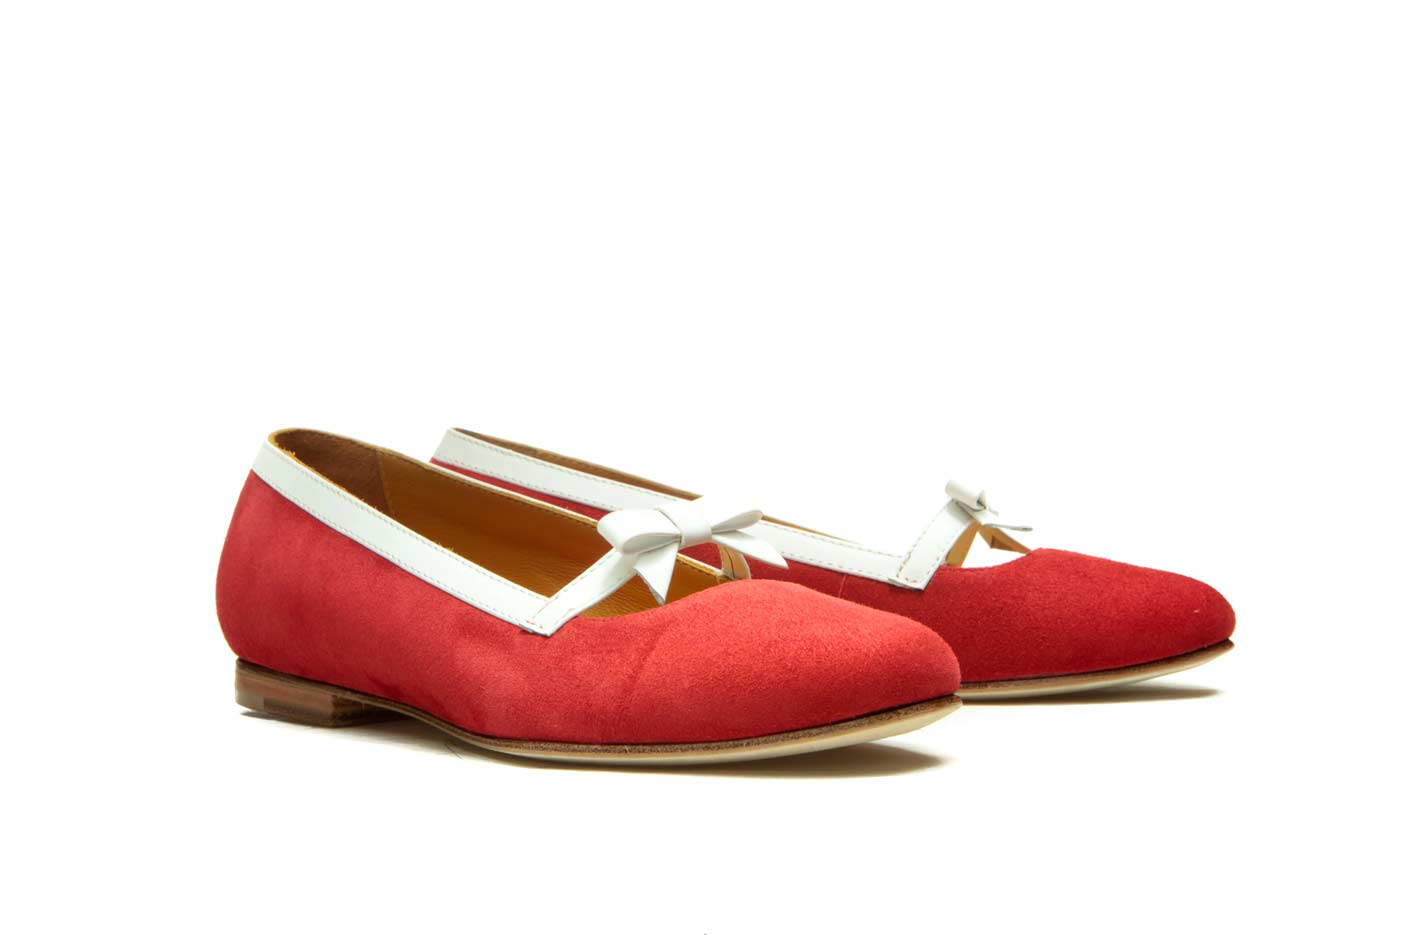 Red leather ballet flats   Handmade